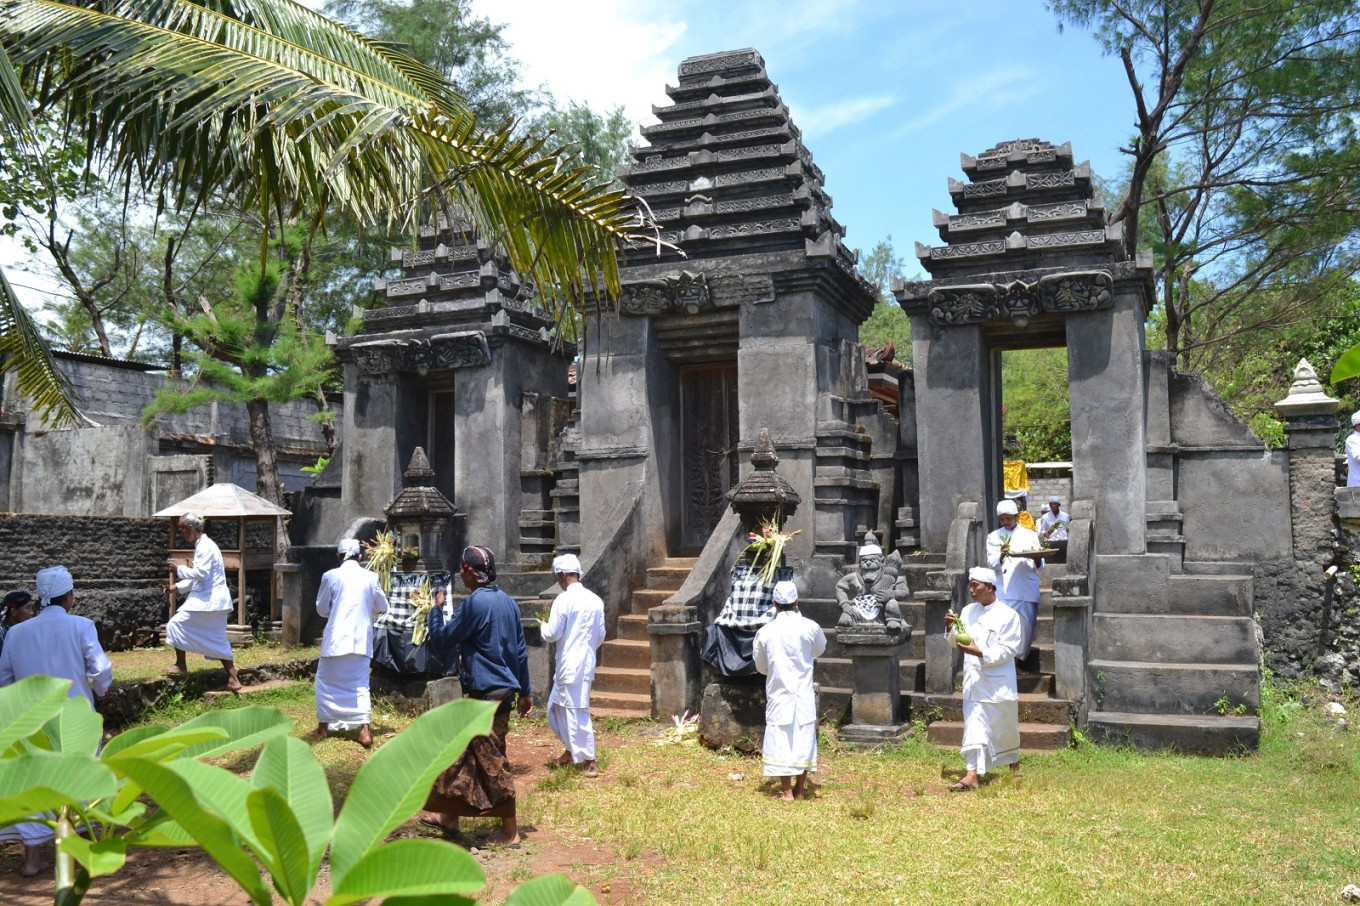 Hindu adherents undertake the ritual of cleaning and purifying sacred objects belonging to Segara Wukir Temple.